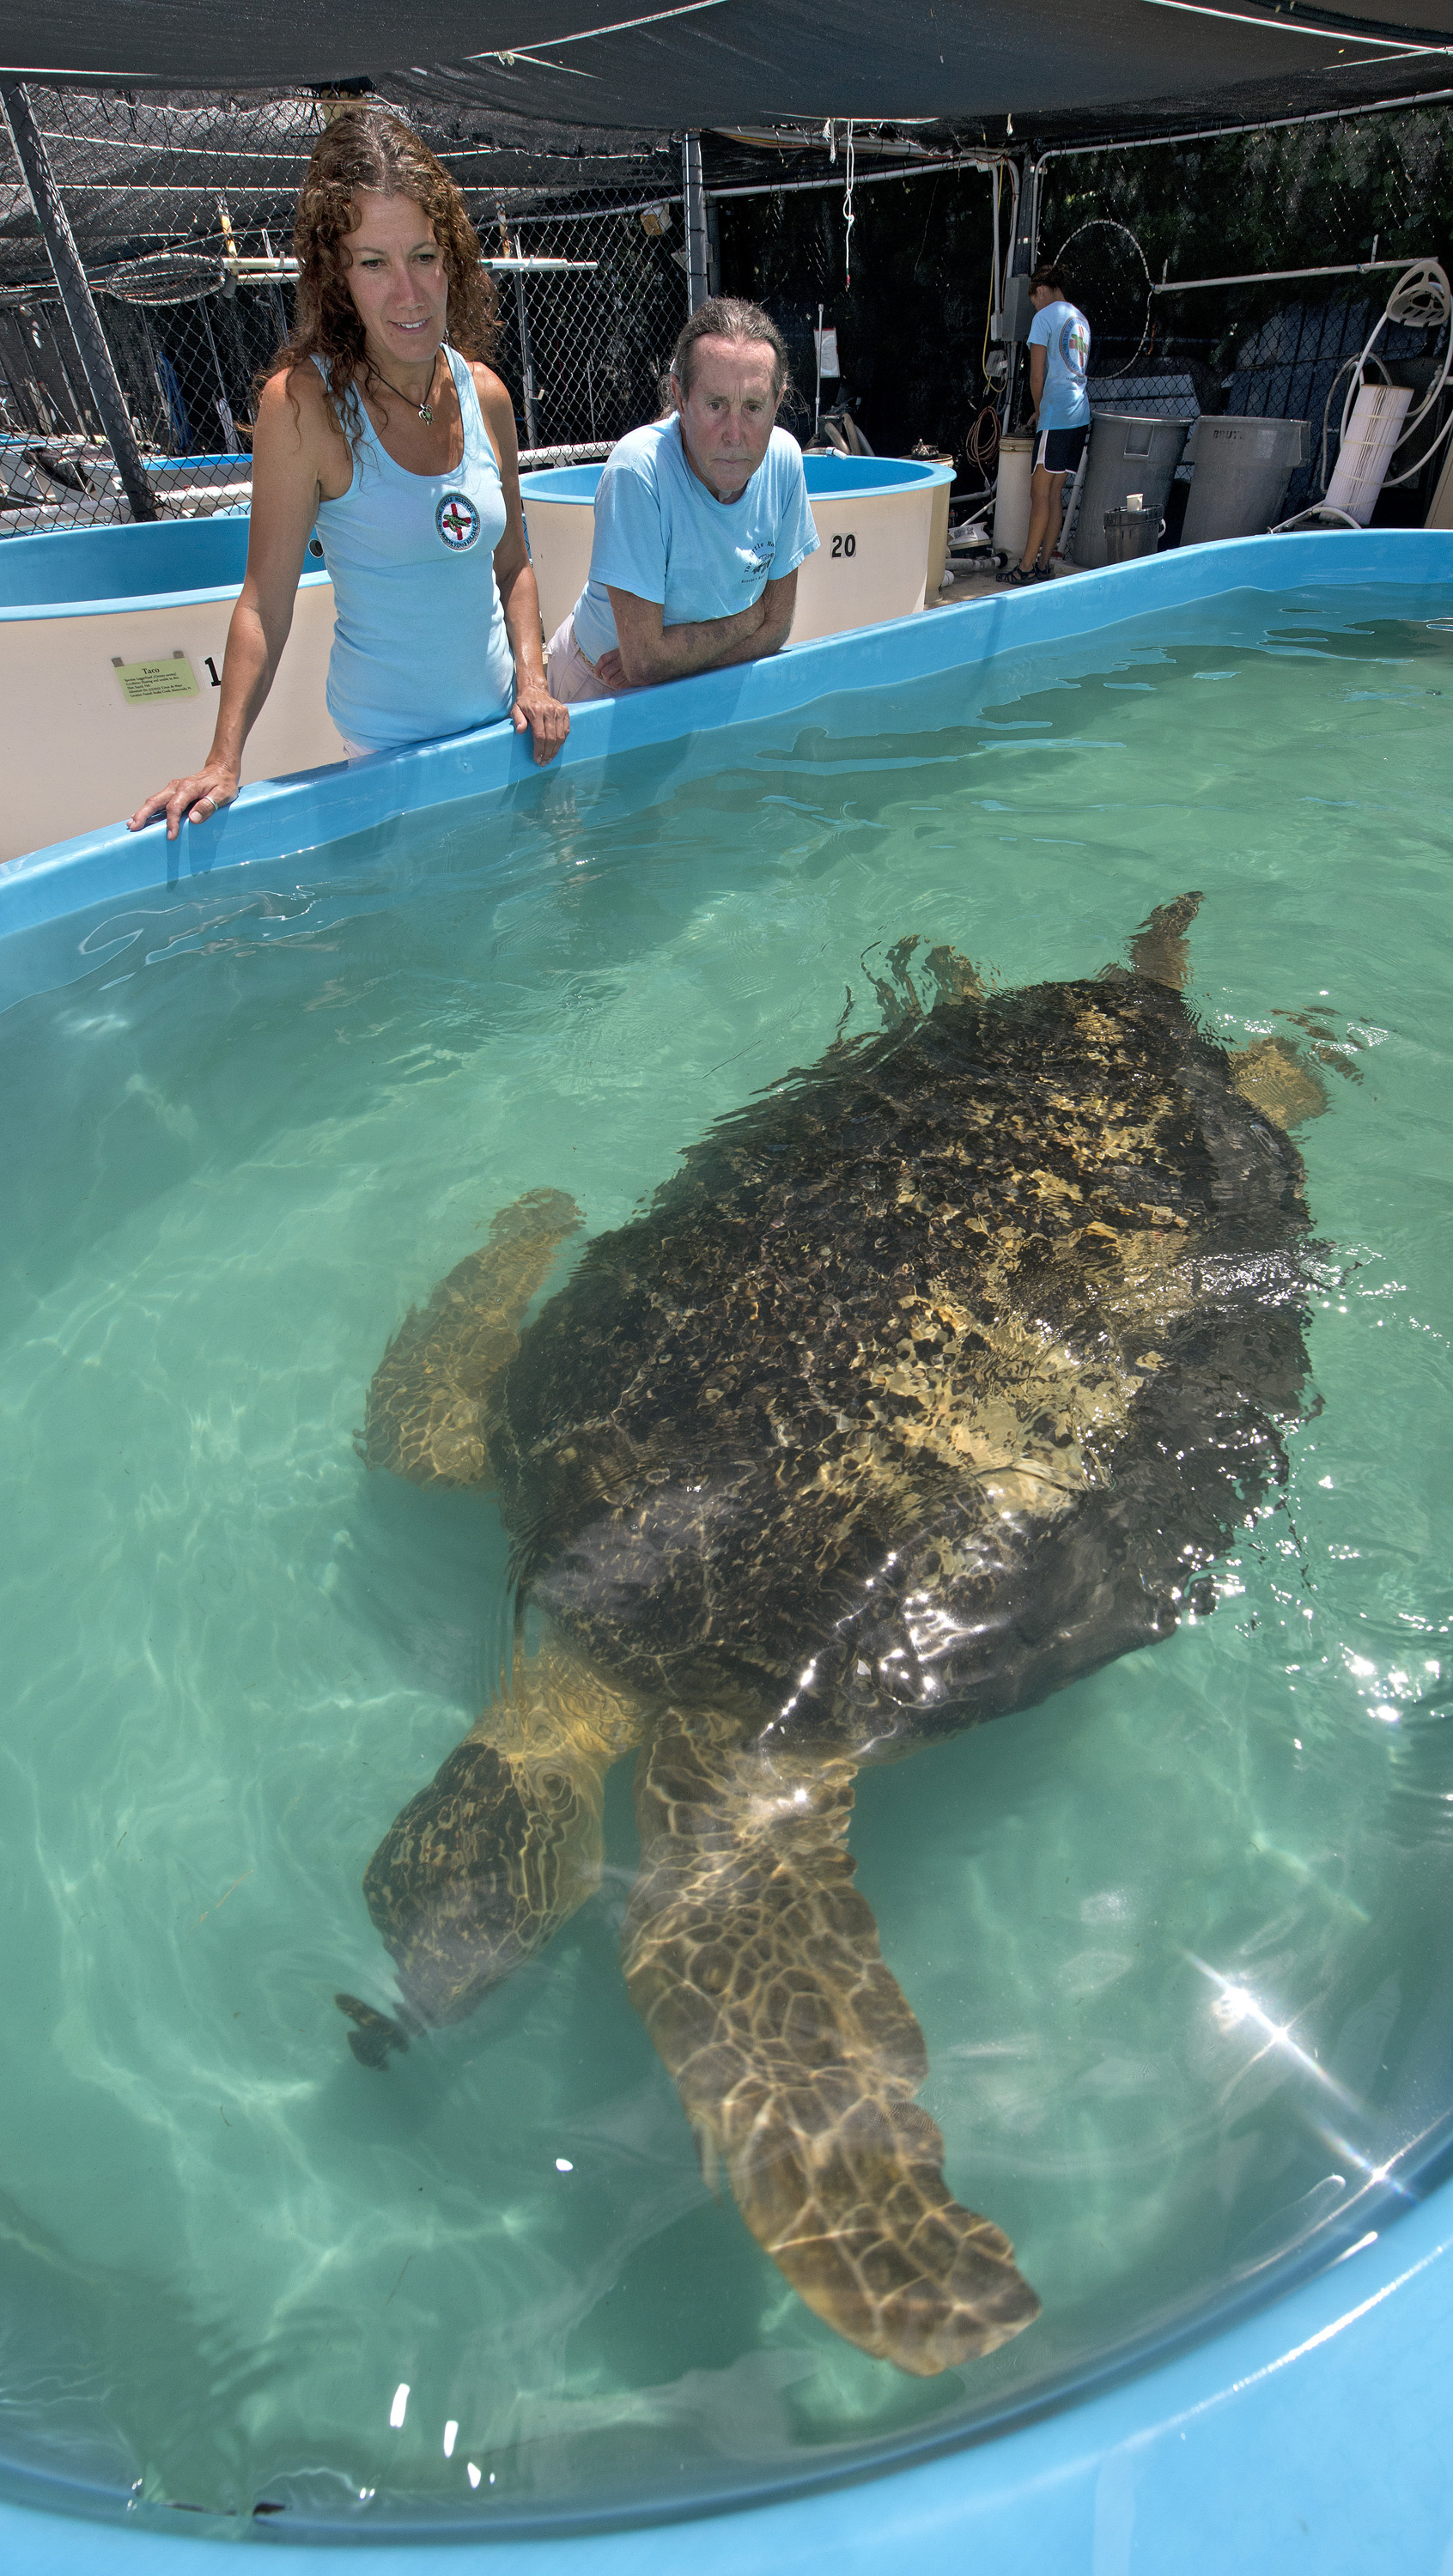 The Turtle Hospital in Marathon opened in 1986 as the world's first state licensed veterinary sea turtle hospital.